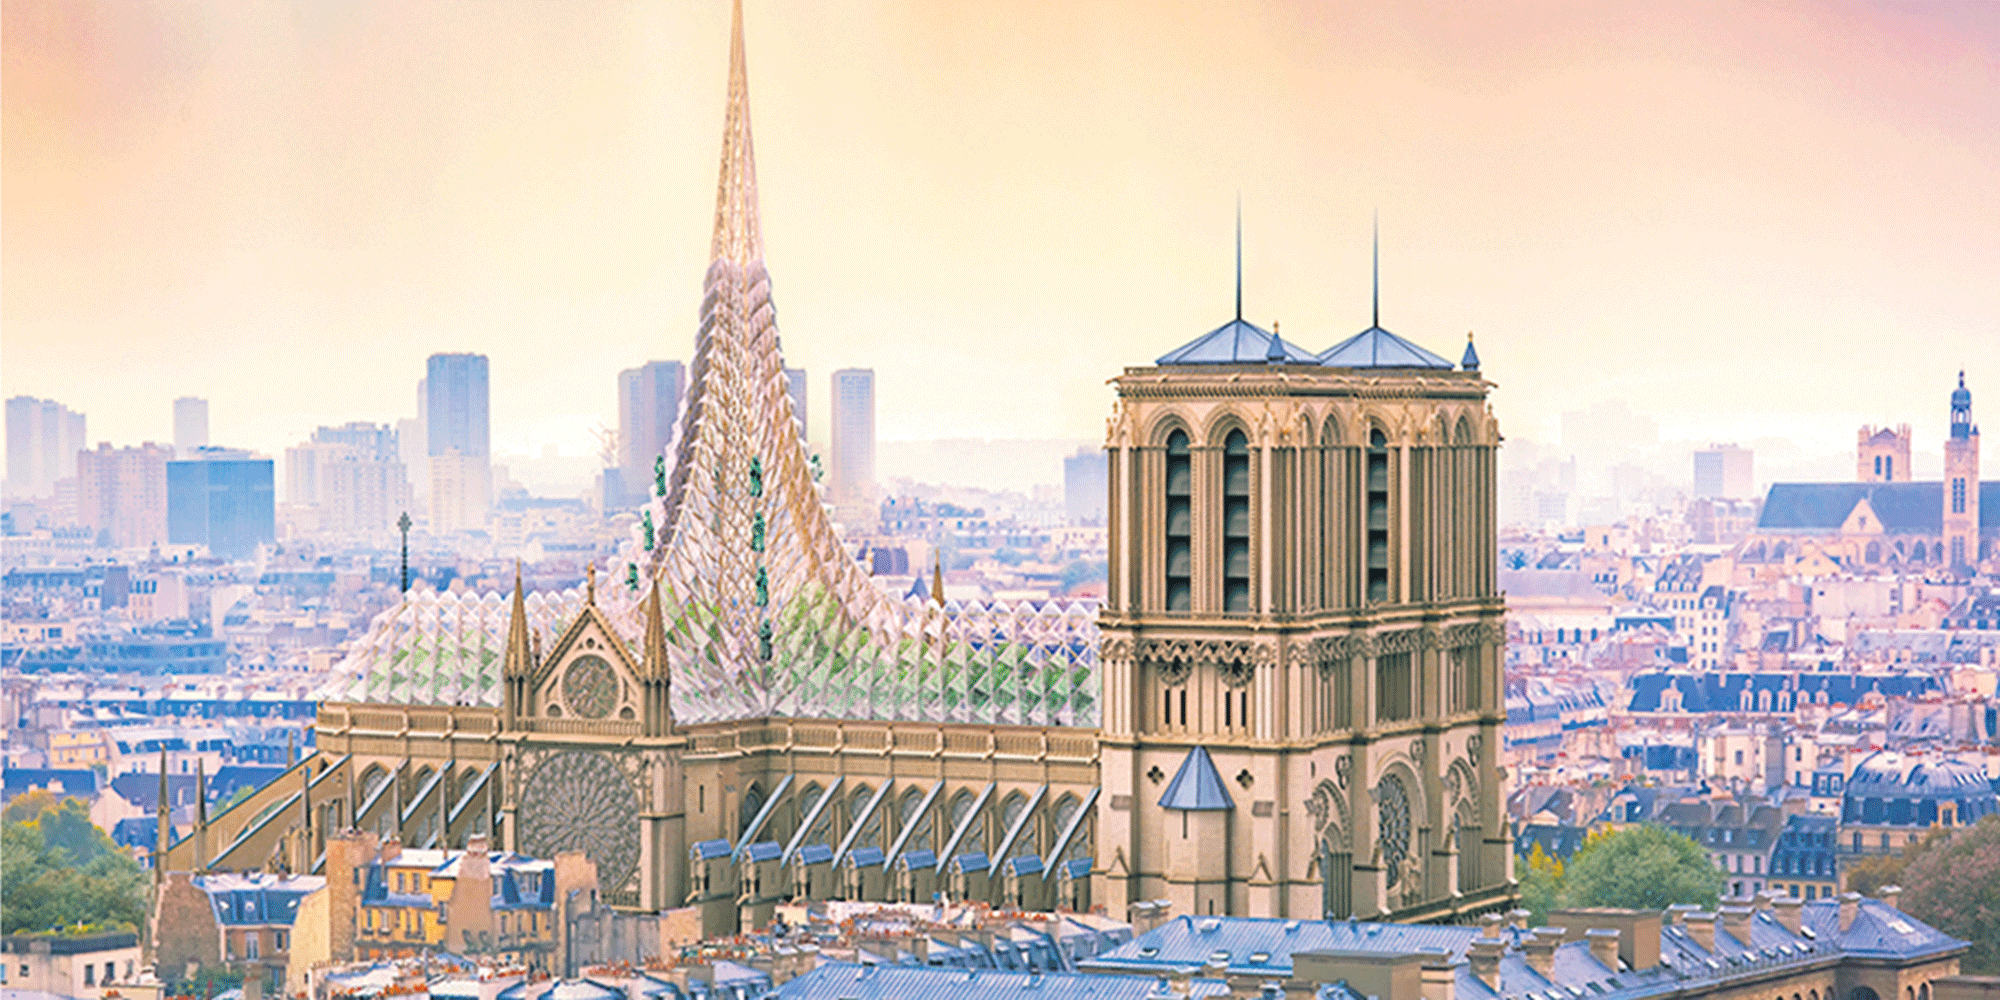 Notre Dame De Paris Le Point Sur Un Chantier Qui Divise